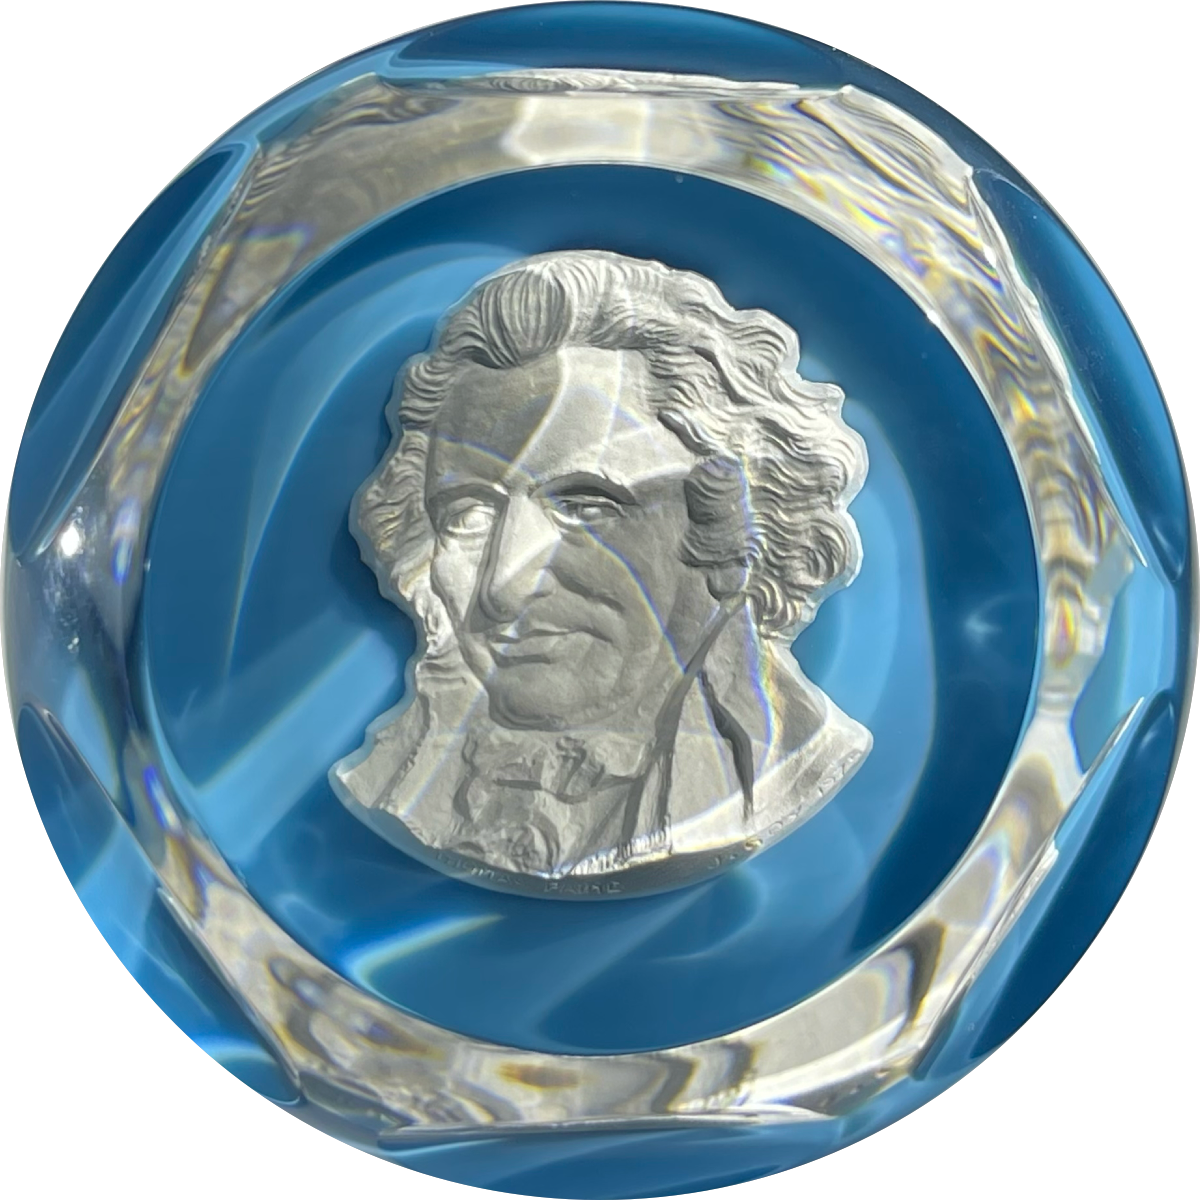 Baccarat Crystal 1976 Thomas Paine Sulphide on Opaque Blue Ground